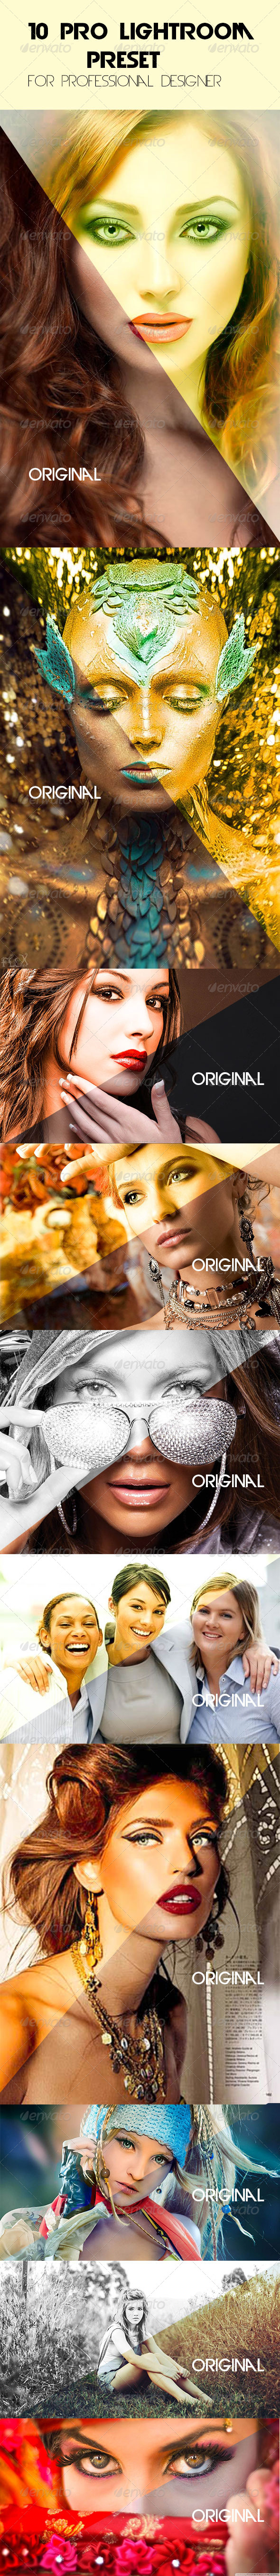 GraphicRiver 10 Pro Lightroom Preset 7969205